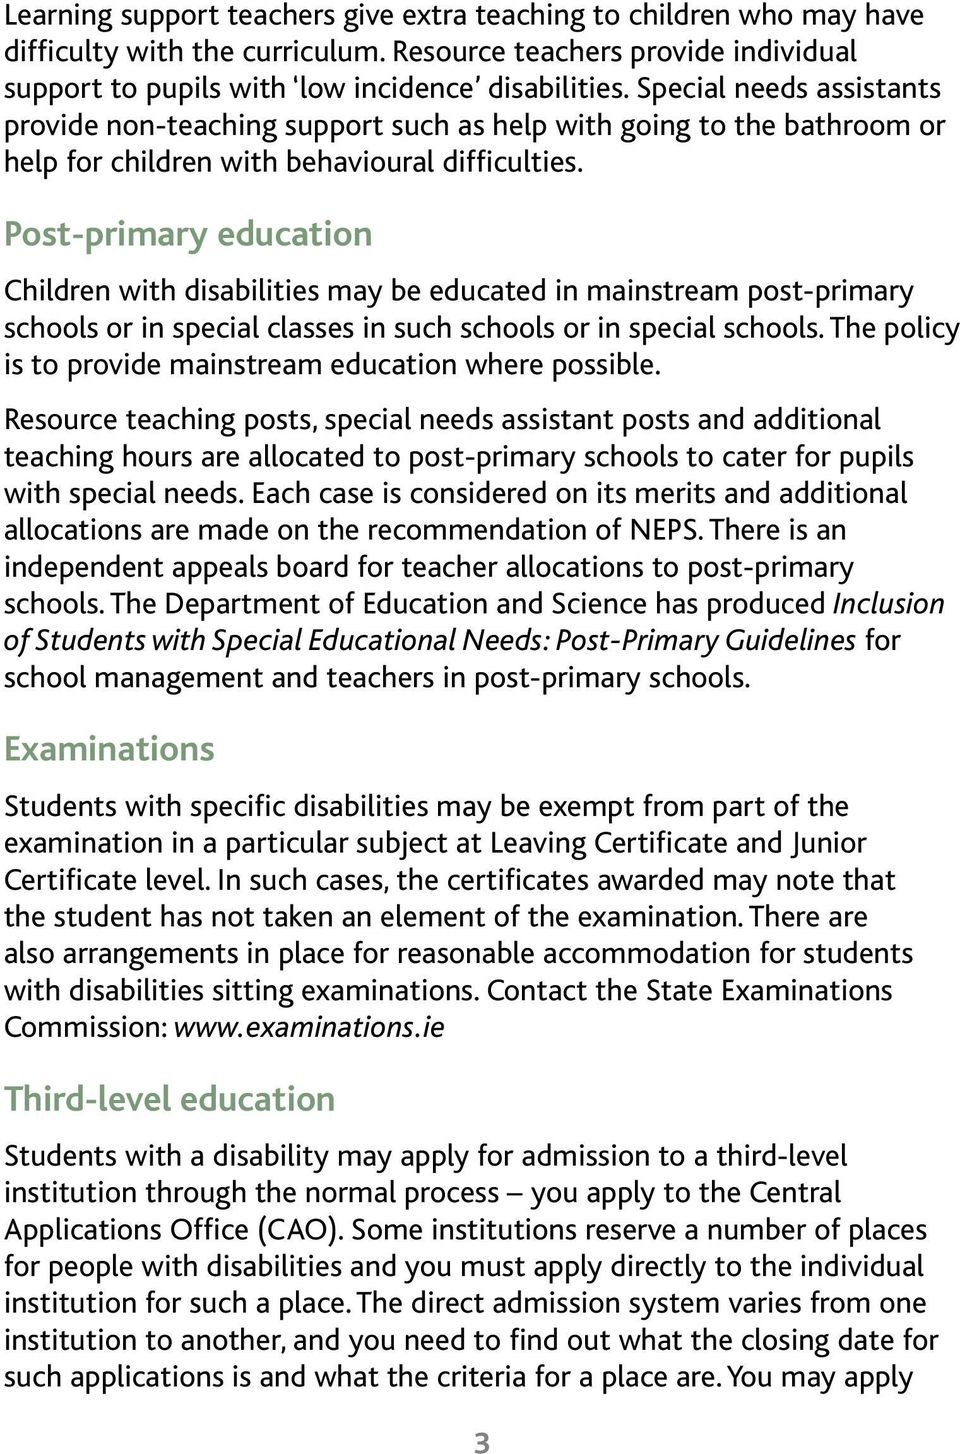 Post-primary education Children with disabilities may be educated in mainstream post-primary schools or in special classes in such schools or in special schools.